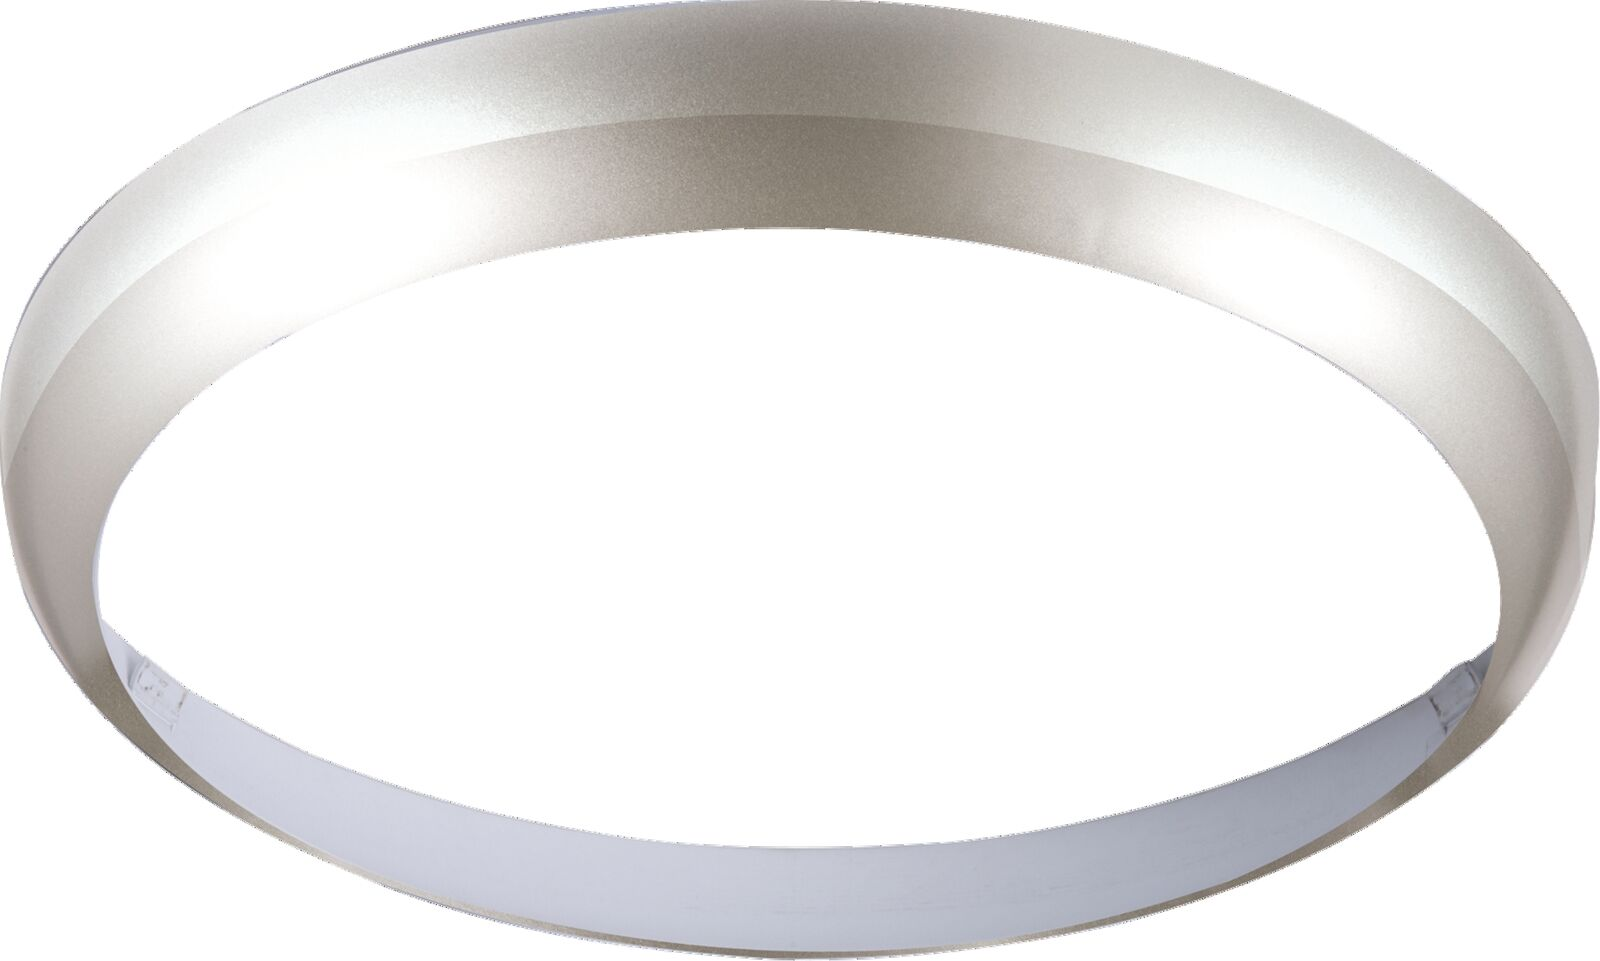 Cloison LED 14 watts IP44 IP44 watts 6000K 1020 LuHommes  300mm  choix de cadres (extra) 7468f4